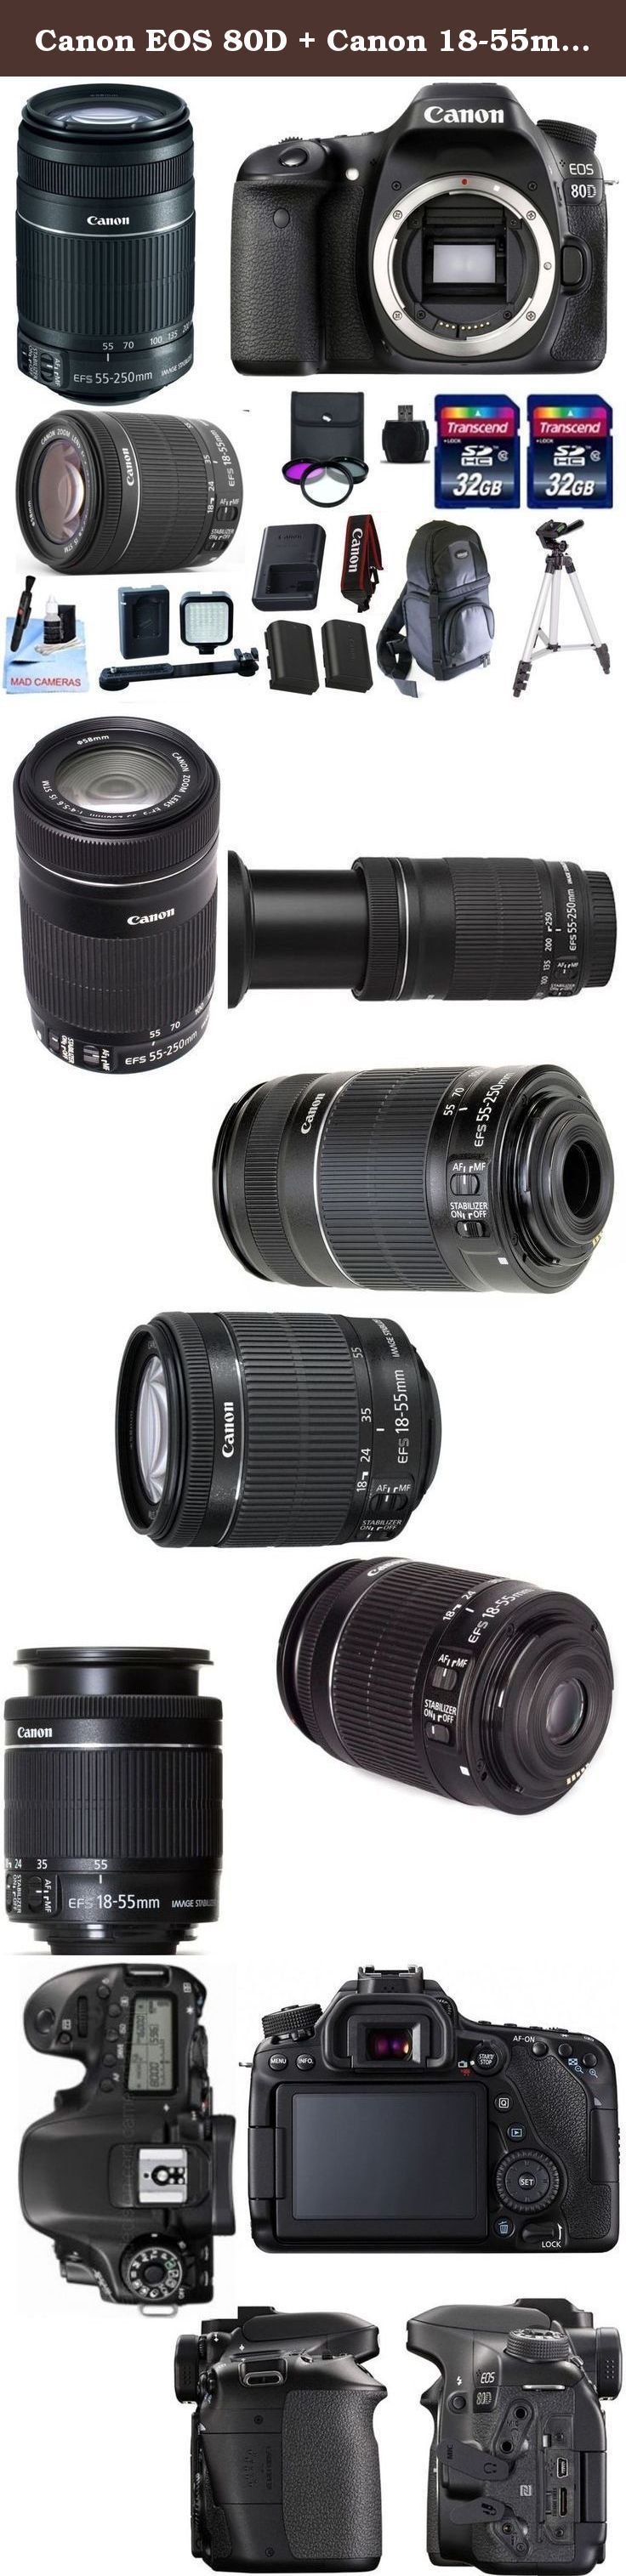 """Canon EOS 80D + Canon 18-55m IS STM Standard Zoom Lens + Canon 55-250mm IS STM + 2 32GB Transcend SD Memory Cards + Spare LP E6 + LED Video Light Kit & More - International Version. The Canon EOS 80D DSLR Camera Features: 24.2MP APS-C CMOS Sensor DIGIC 6 Image Processor 3.0"""" 1.04m-Dot Vari-Angle Touchscreen Full HD 1080p Video Recording at 60 fps 45-Point All Cross-Type AF System Dual Pixel CMOS AF Expanded ISO 25600, Up to 7 fps Shooting Built-In Wi-Fi with NFC RGB+IR 7560-Pixel Metering..."""